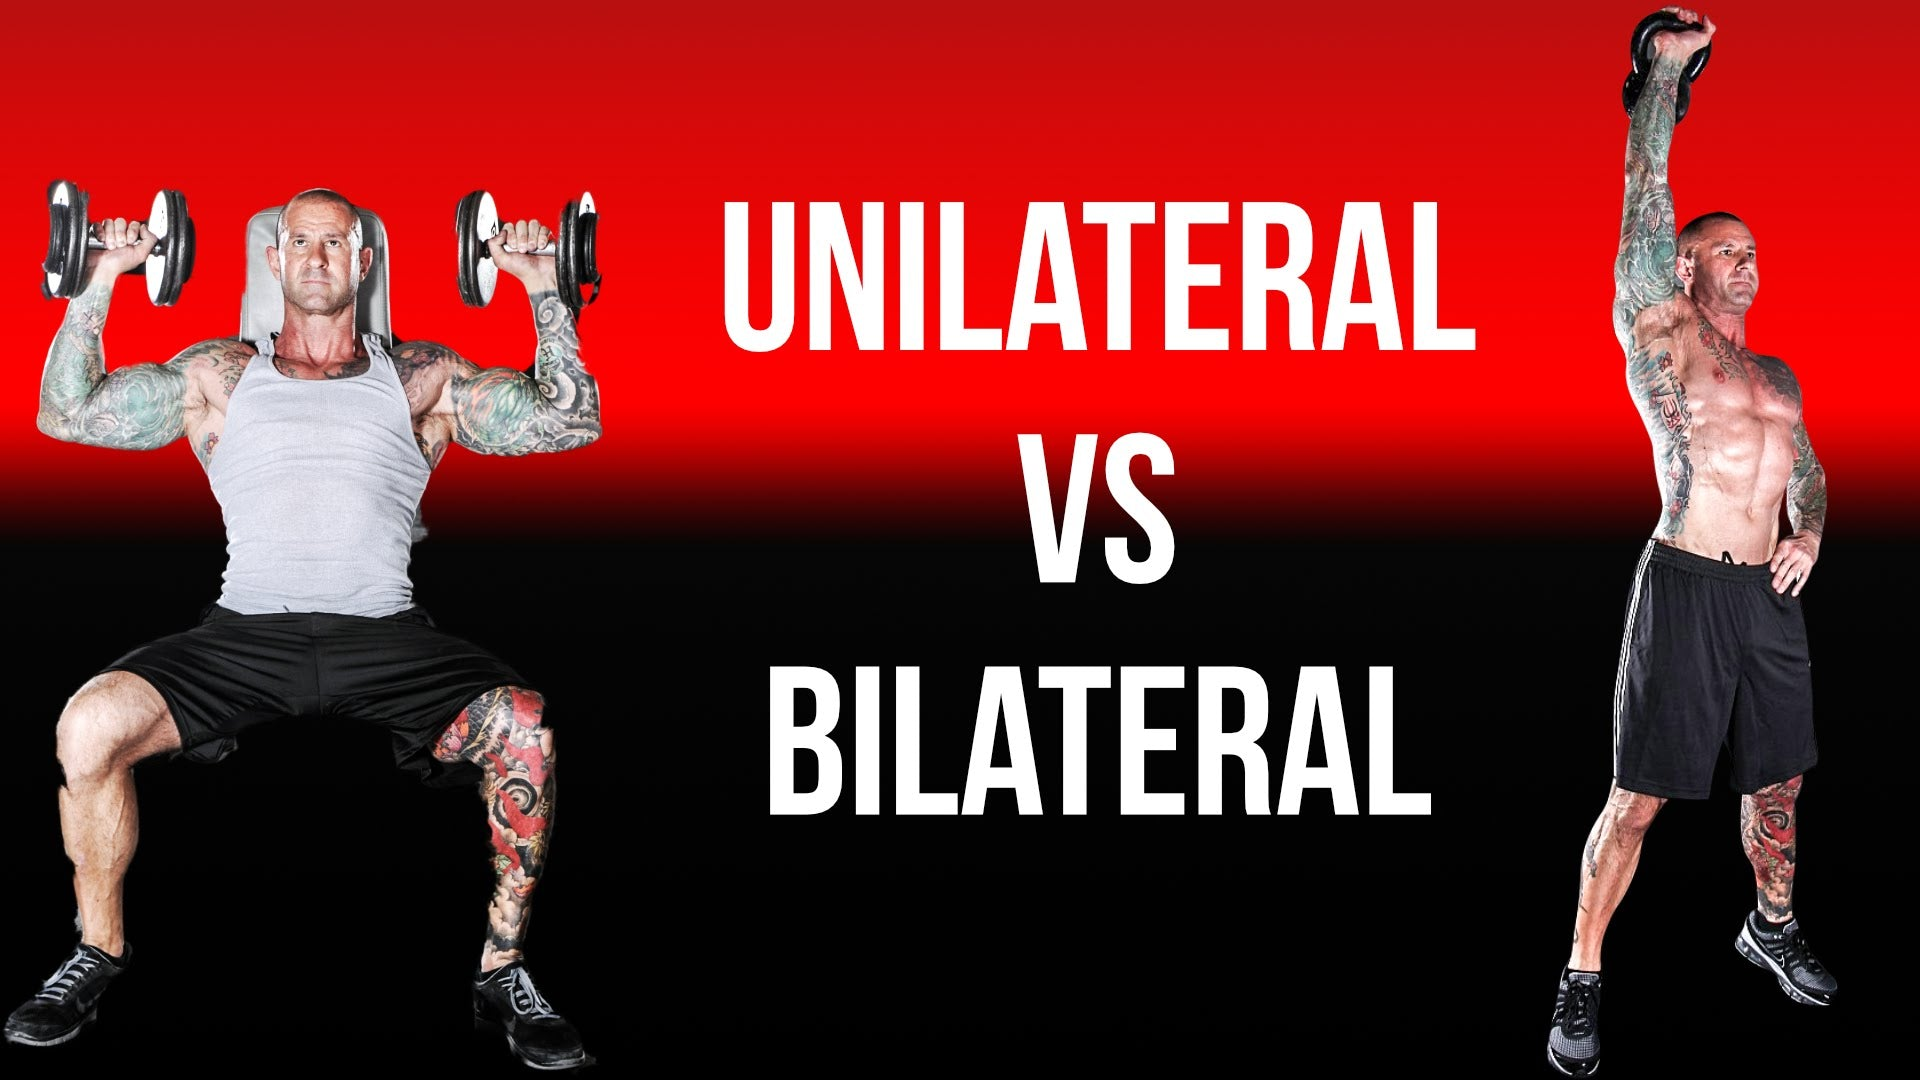 Bilateral Training Or Unilateral Training? Which One To Use When Is Reveiled Here